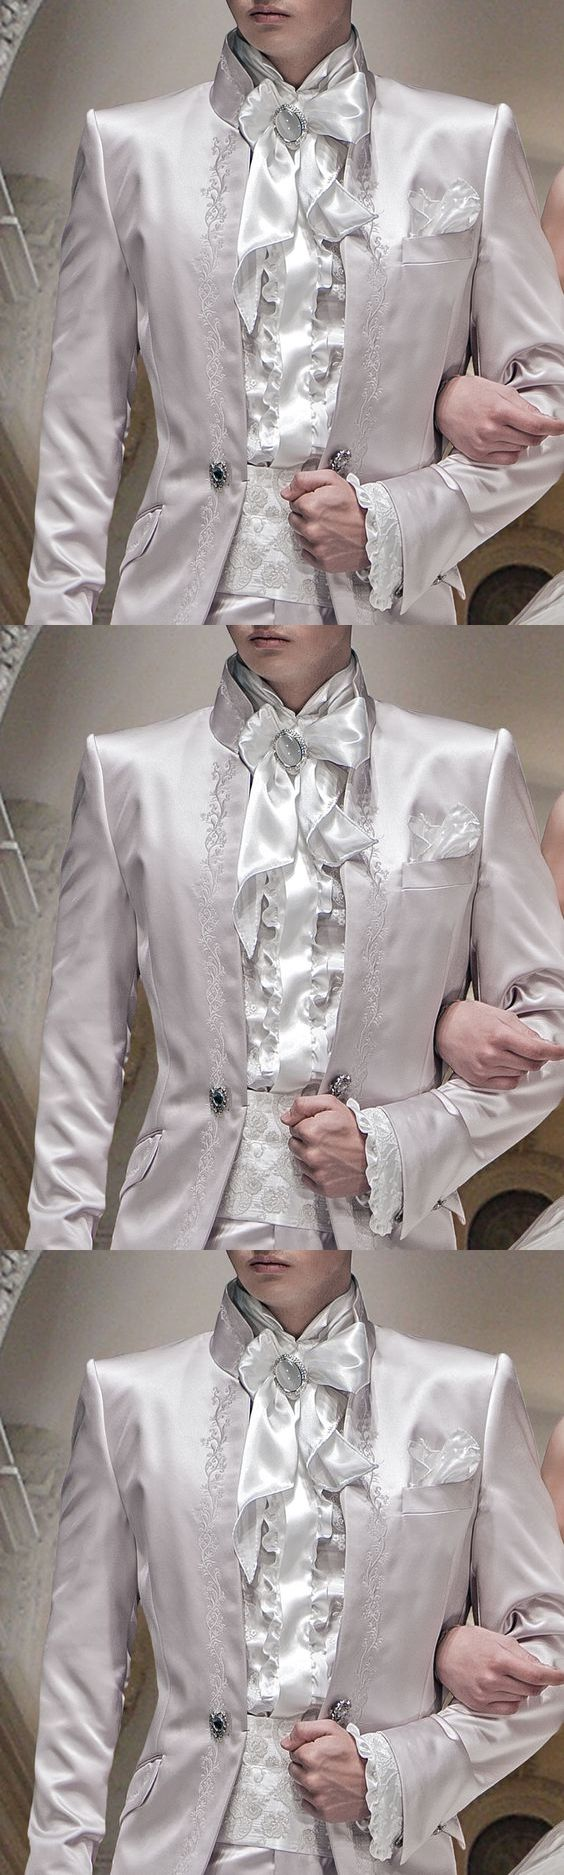 Ivory Embroidery Satin Tuxedos For Men Italian Style Men Suits Formal Party Blazer With Pants Groom Wedding Prom Suits